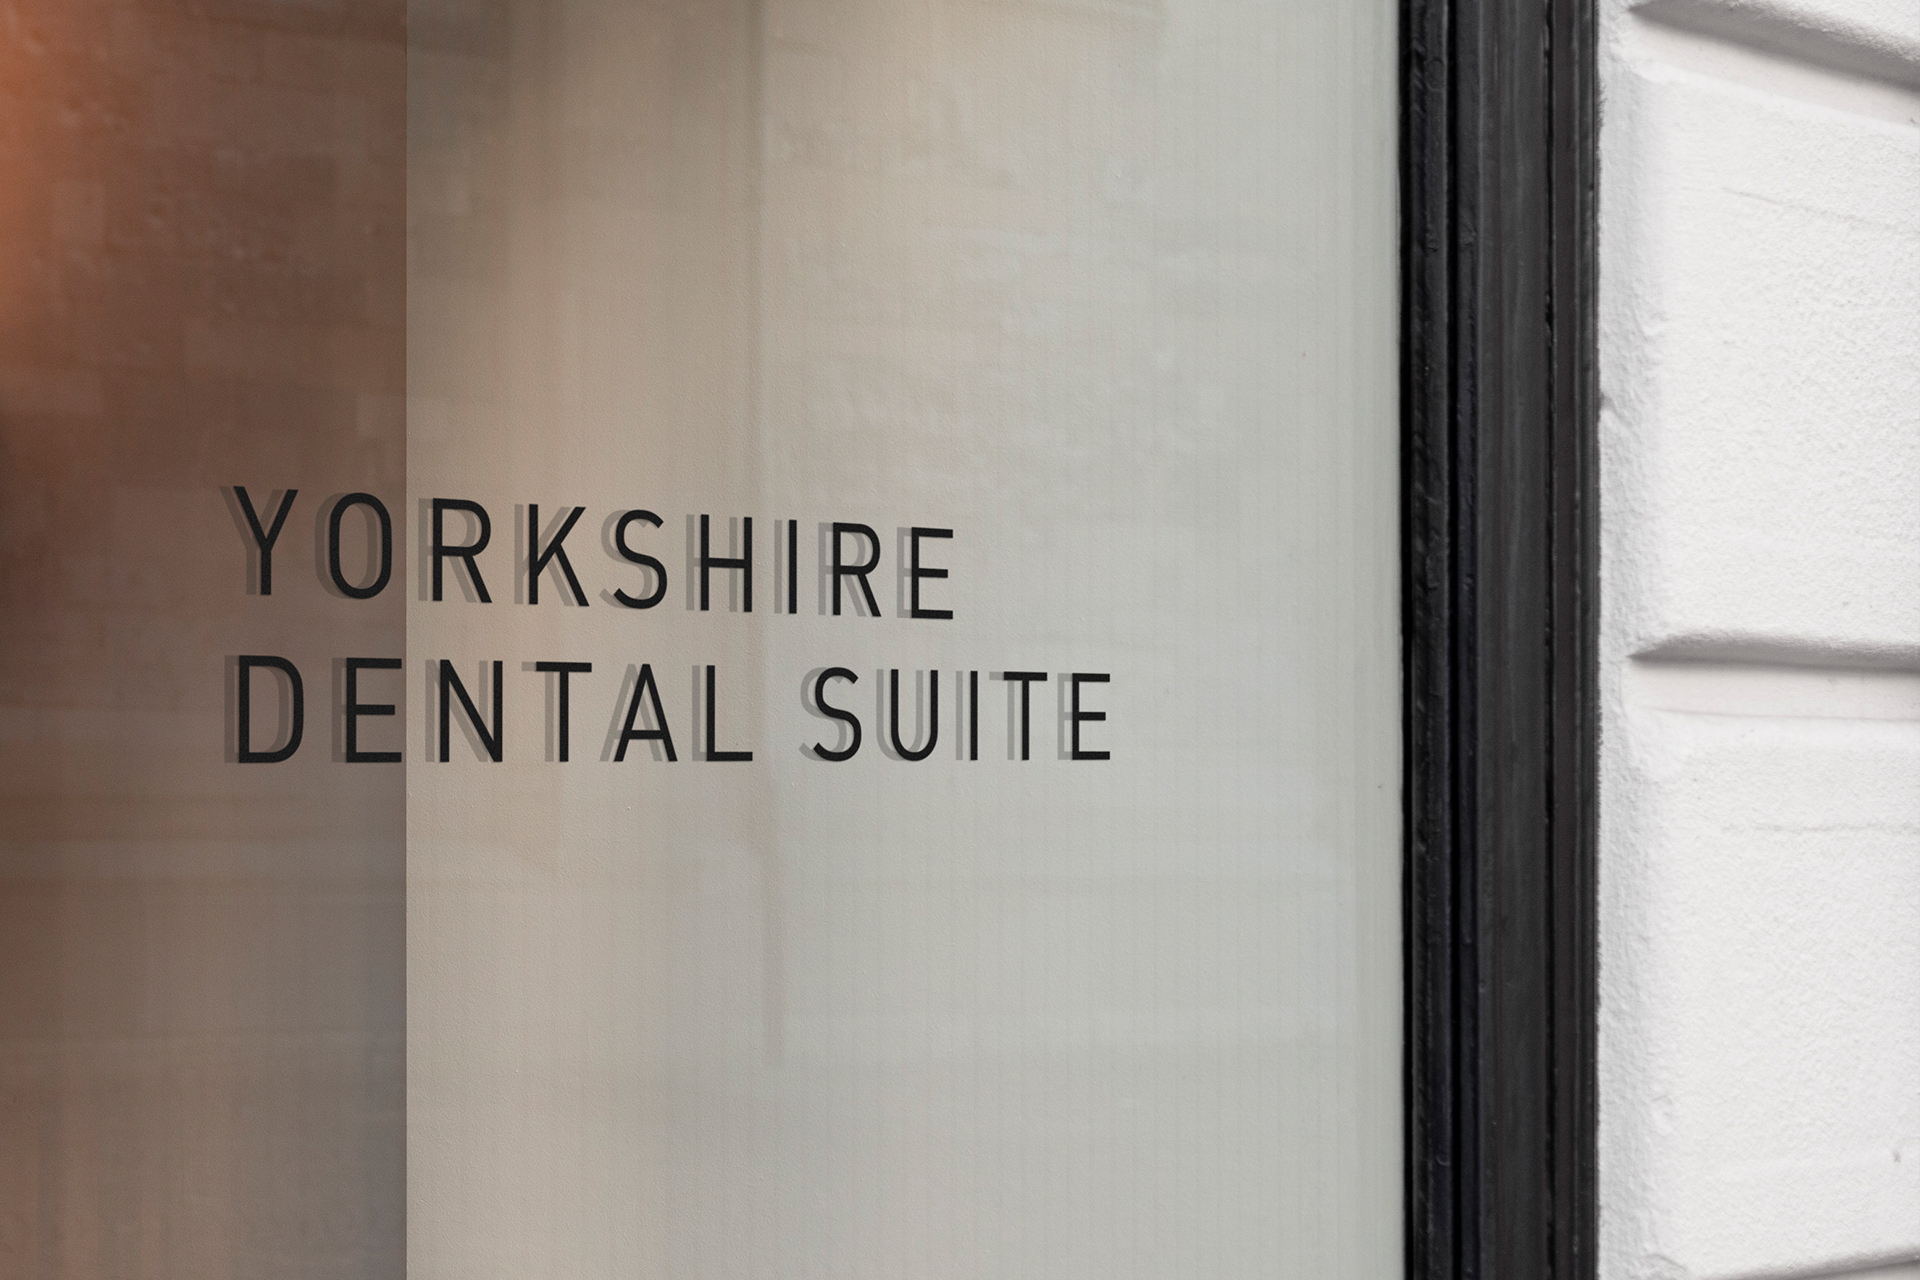 Fable&Co. Create a Brand Identity and website for UK Yorkshire Dental Suite